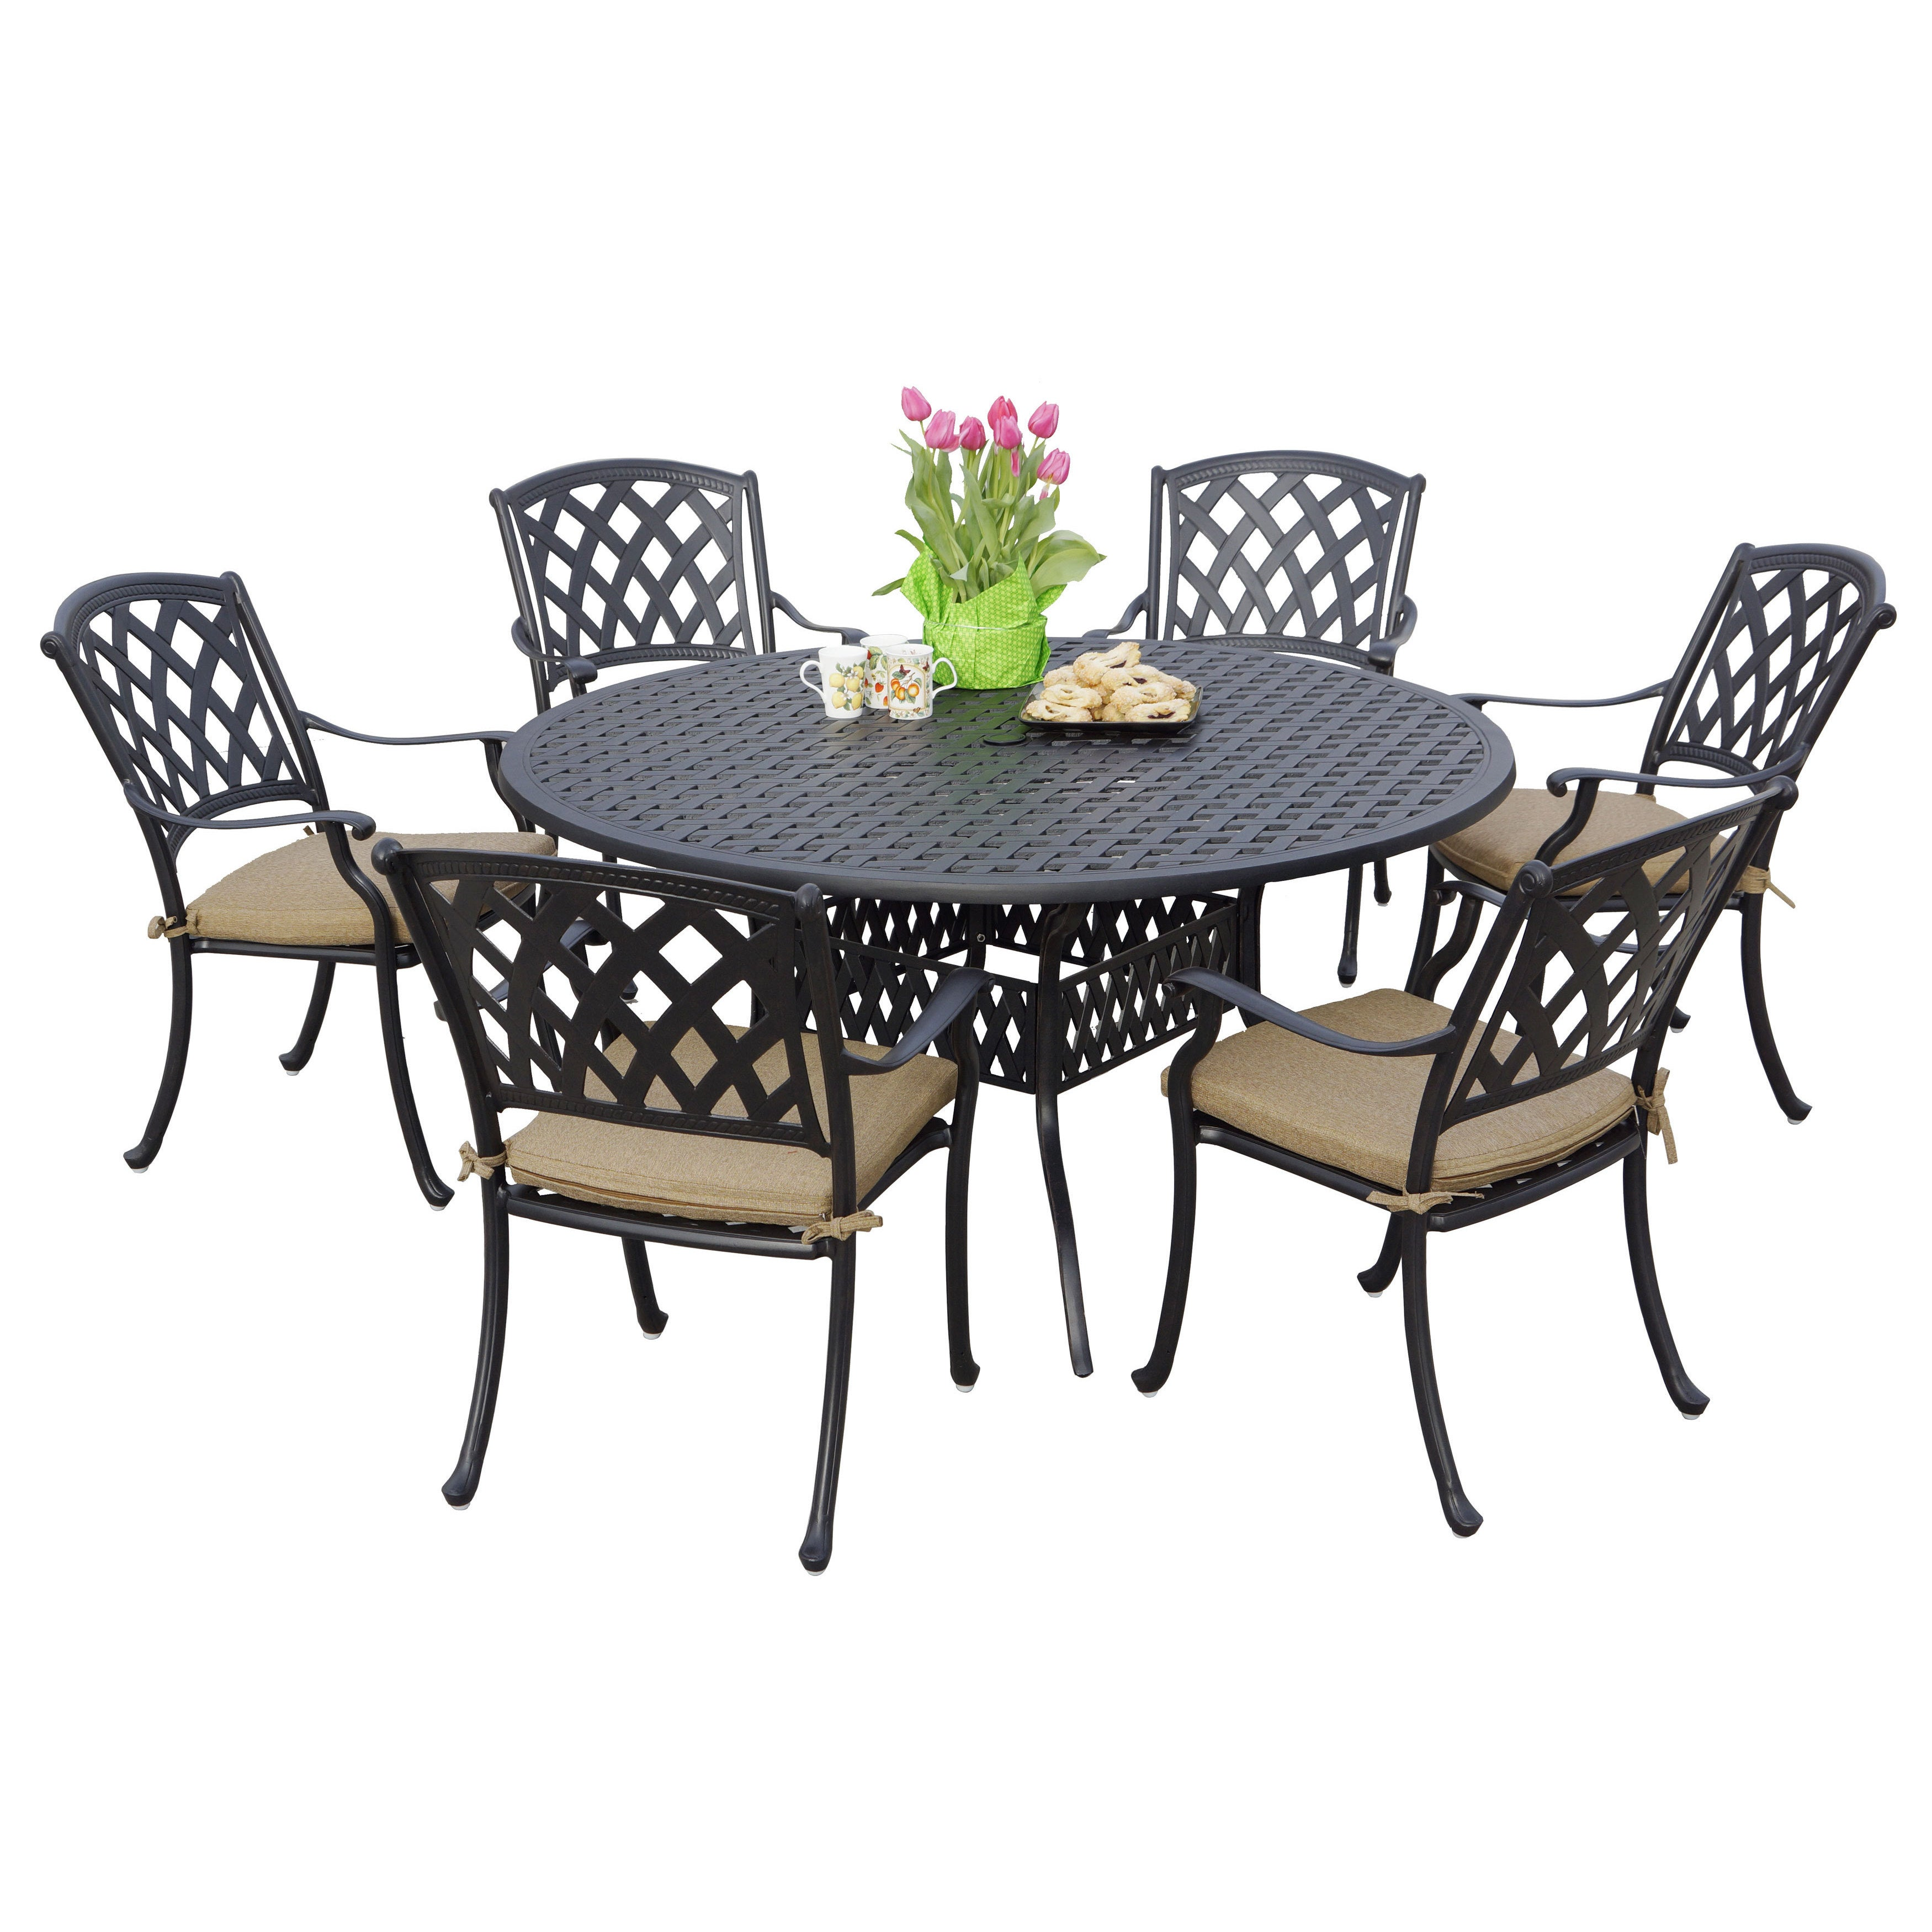 Darlee Ocean View Antique Bronze Cast Aluminum Round 7 Piece Dining Set    Free Shipping Today   Overstock   19439910